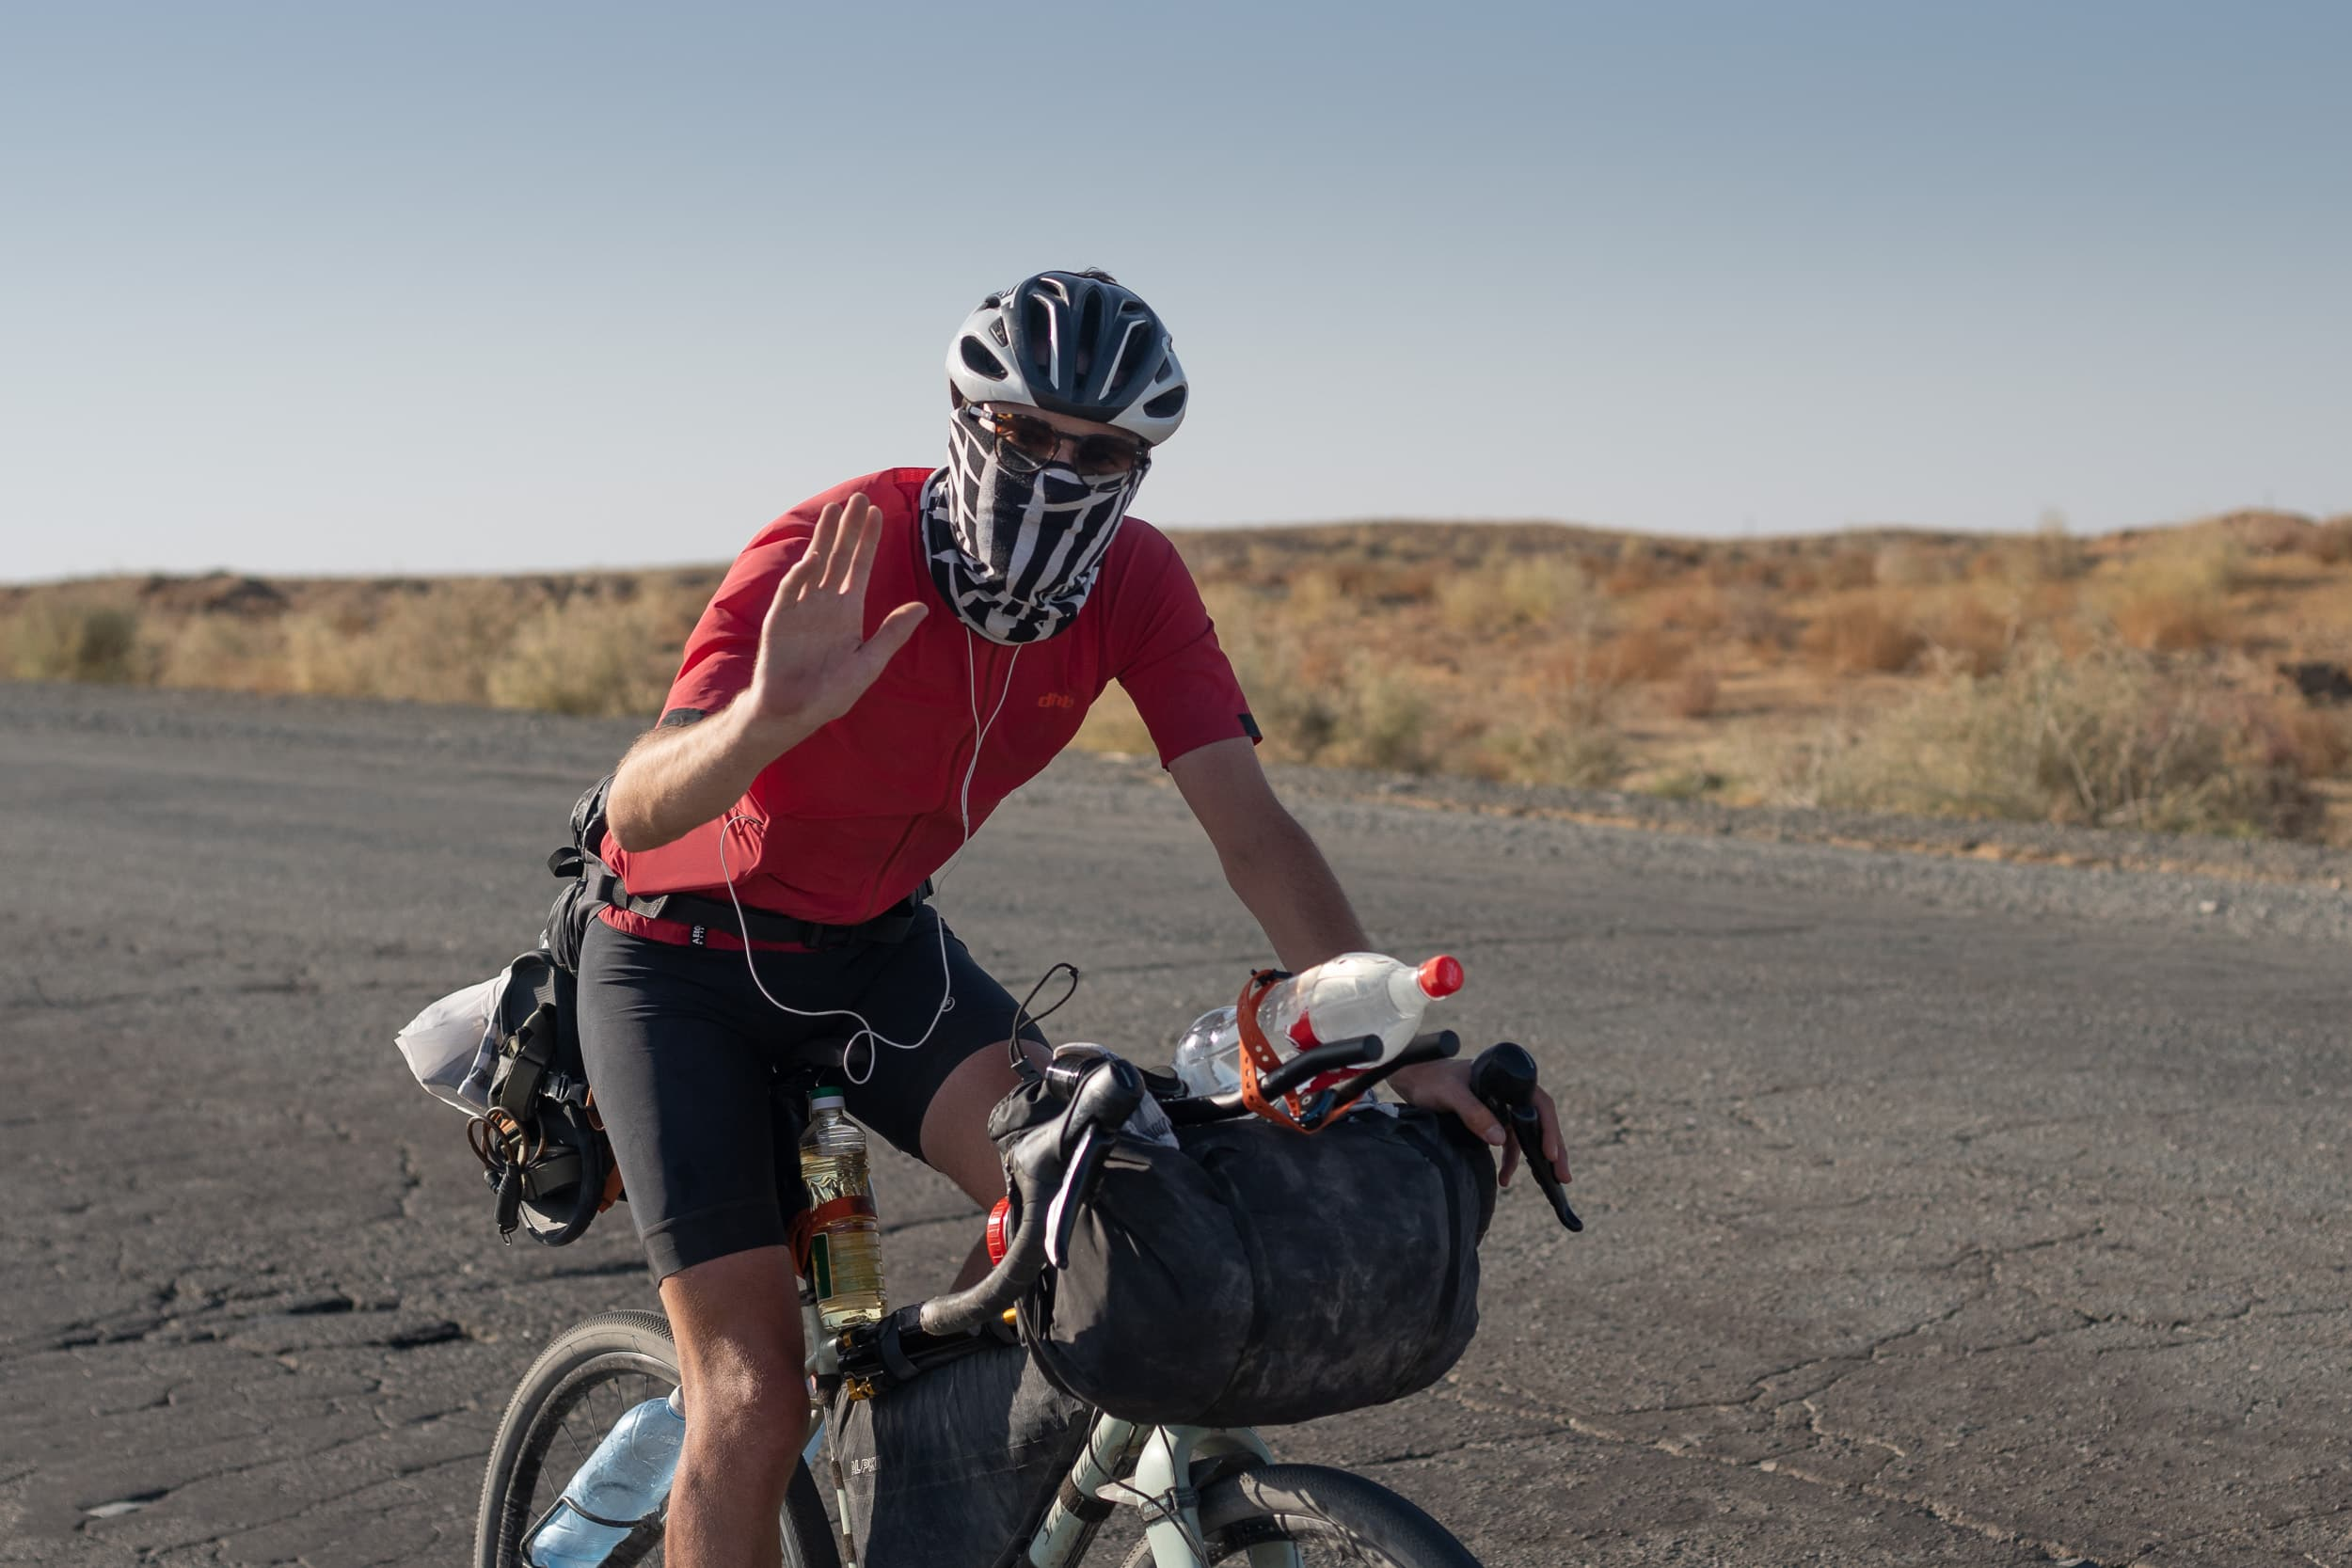 Andrew cycling the Kysylkum desert